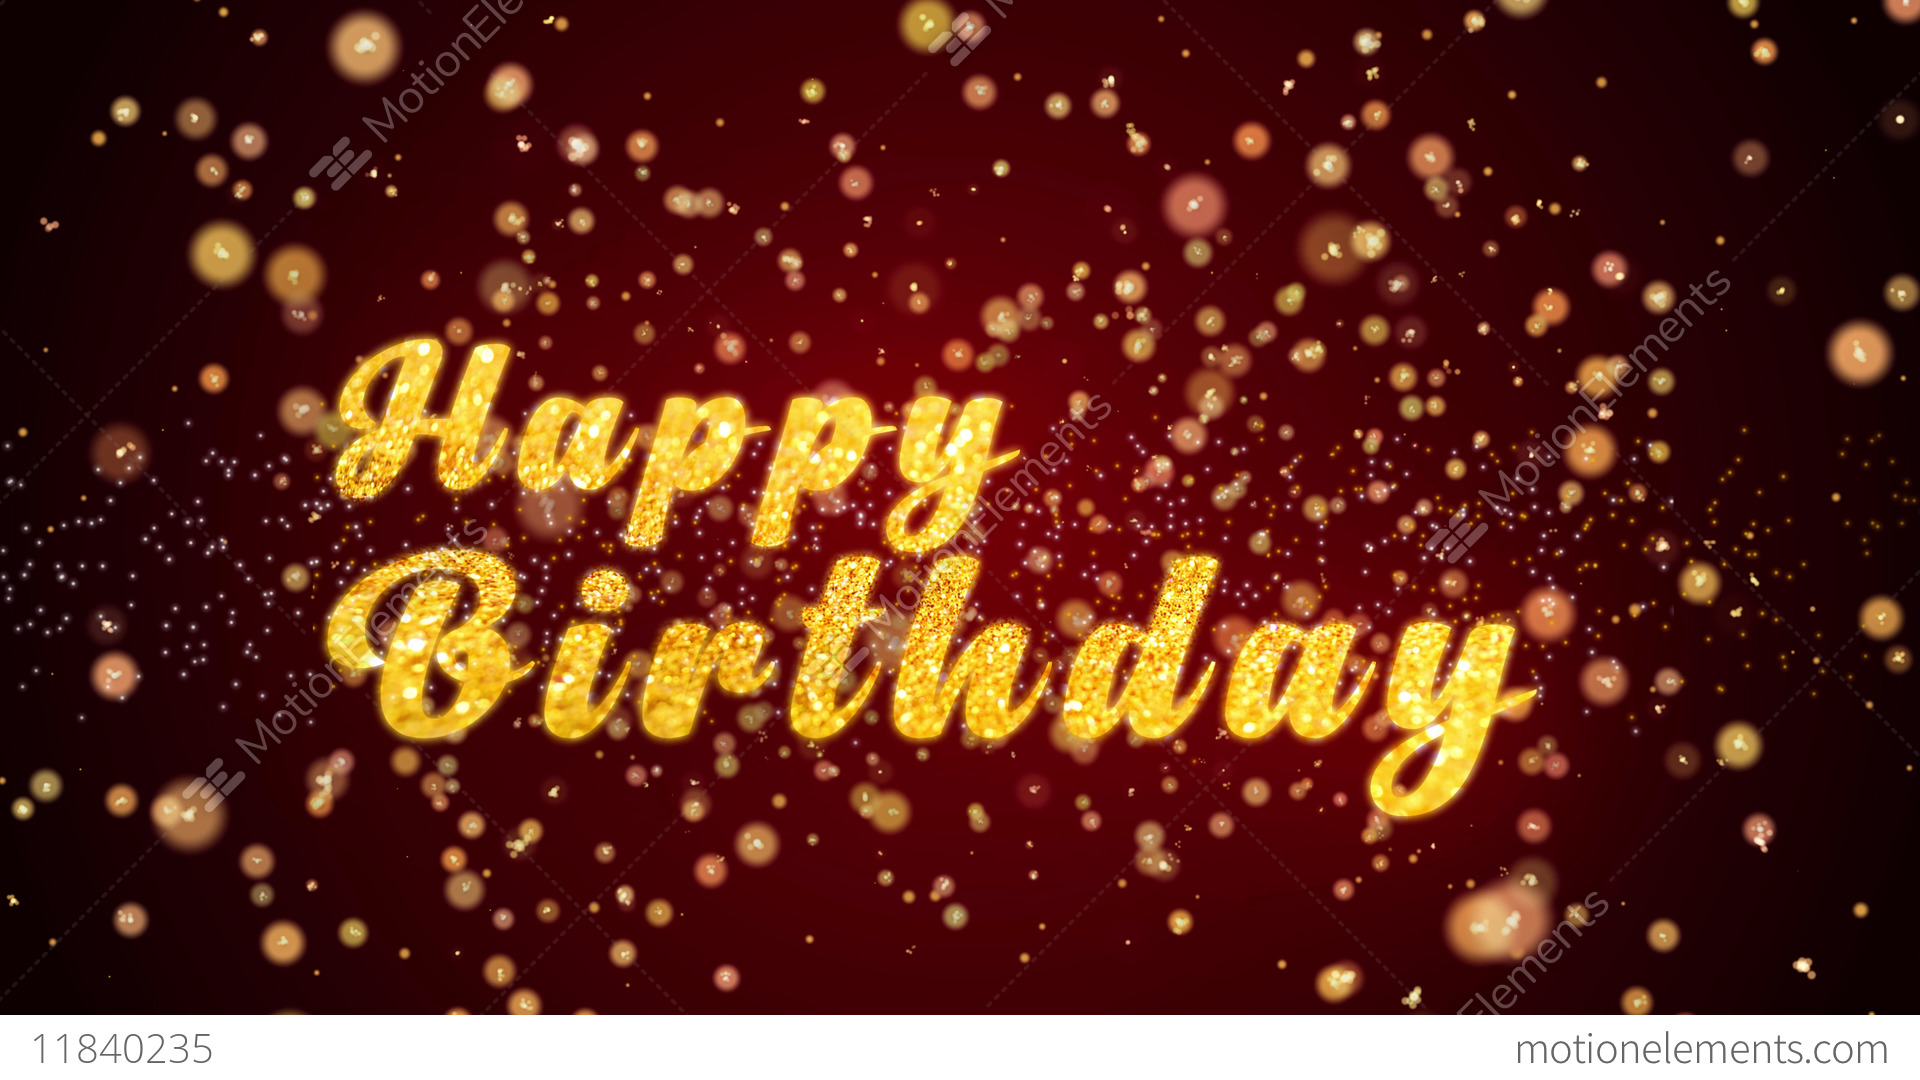 Happy Birthday Greeting Card Text Shiny Particles For Celebration